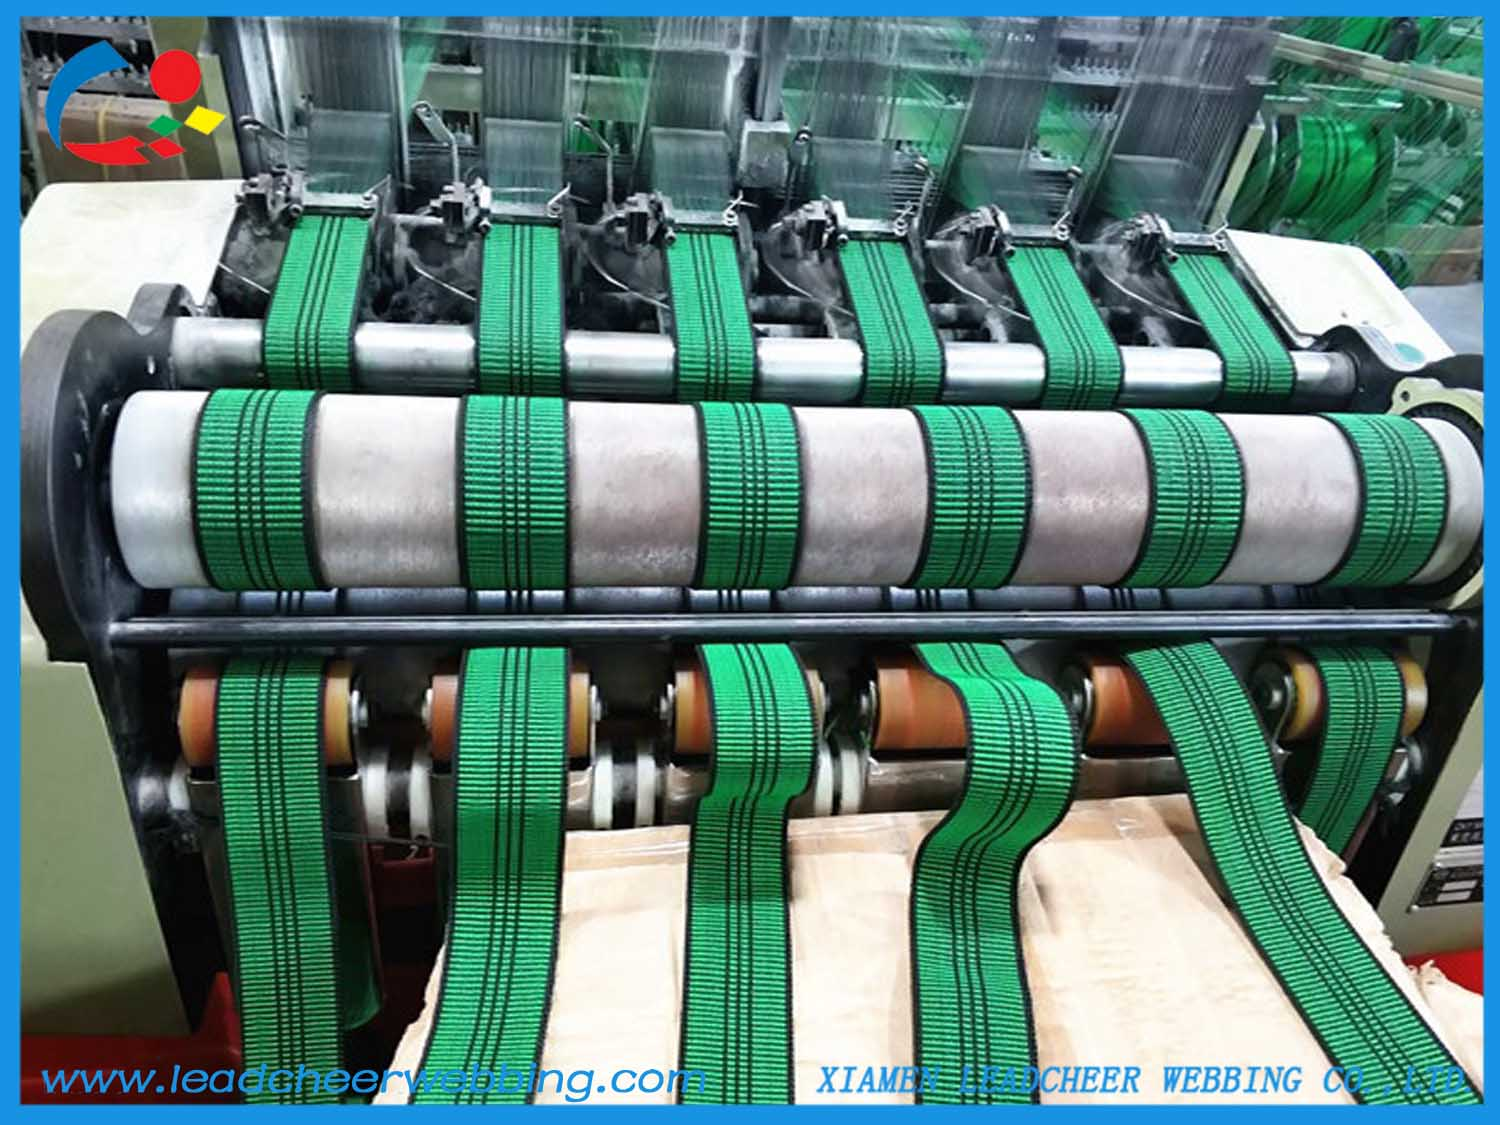 elastic webbing tape for furniture